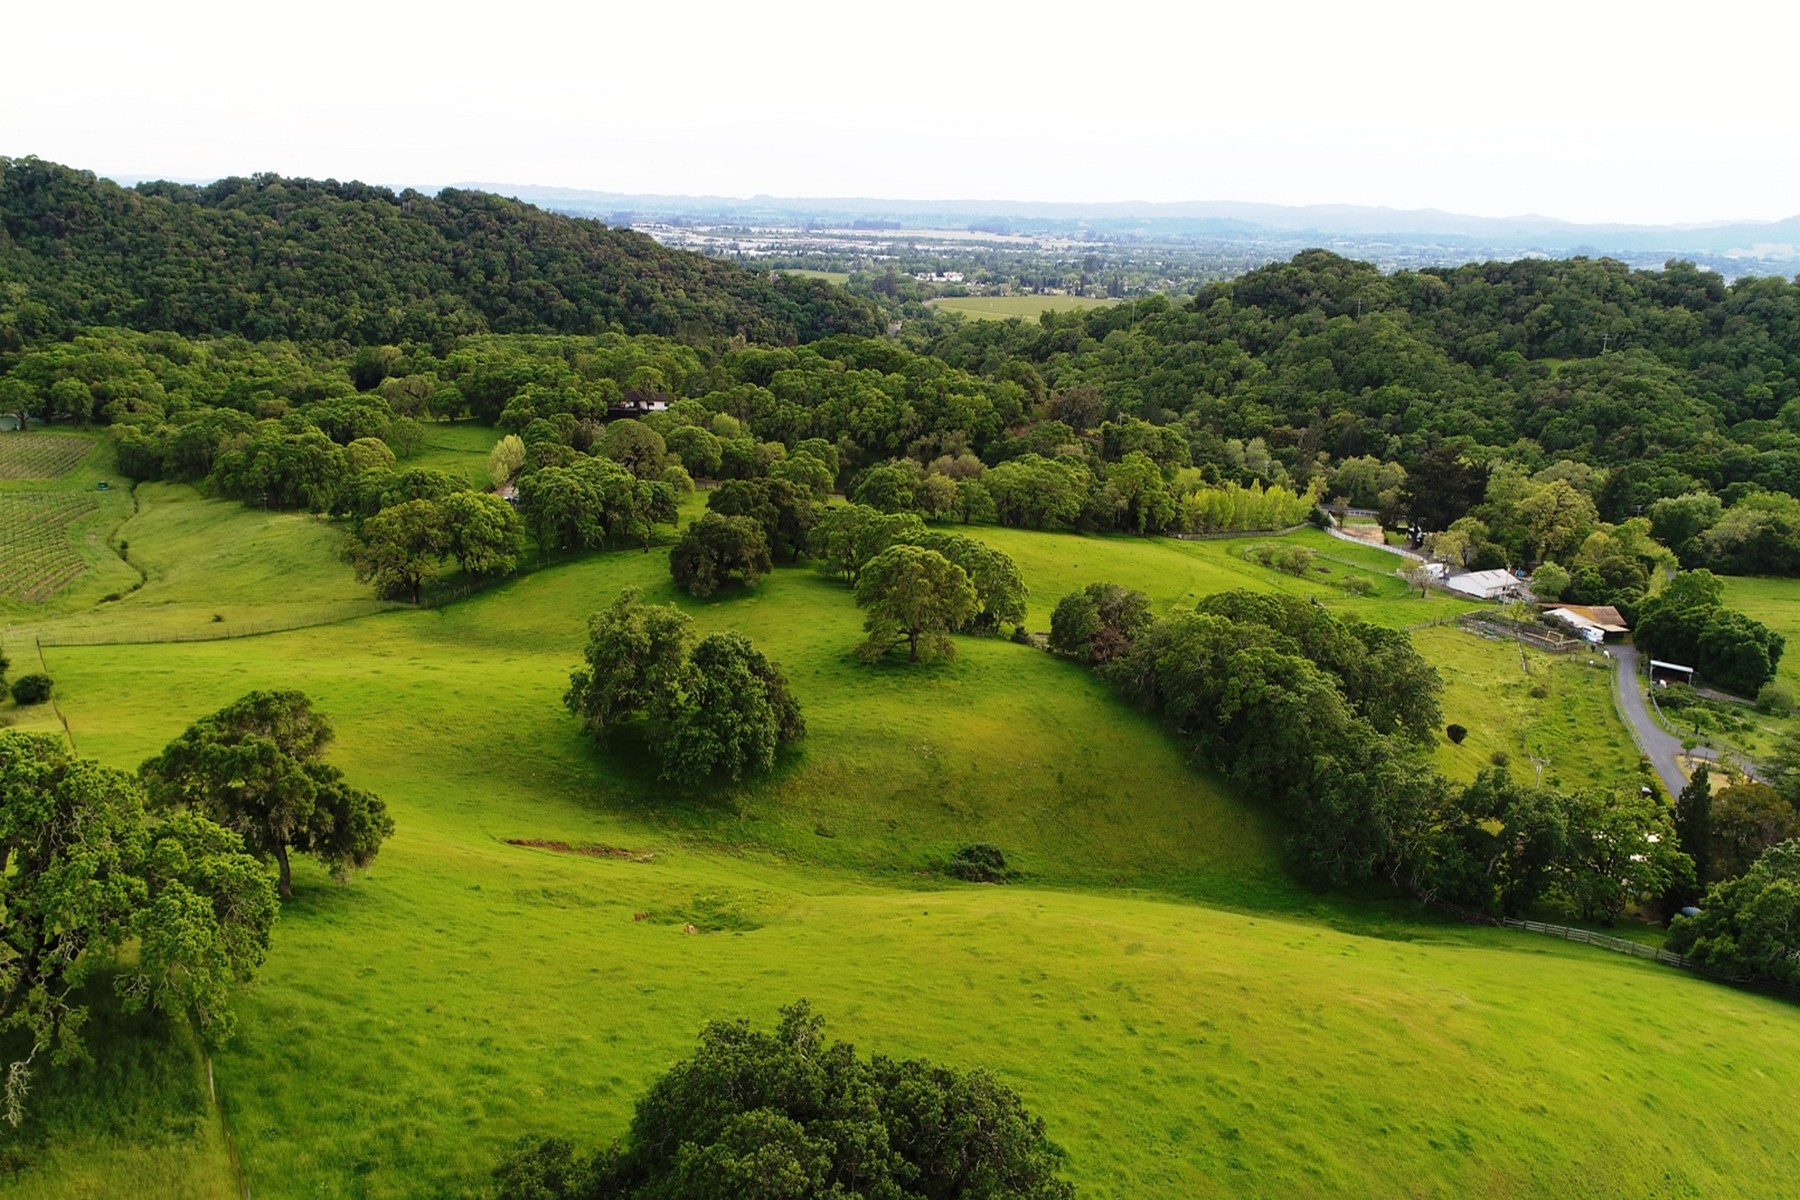 Terreno por un Venta en 8800 Chalk Hill Road Healdsburg, California, 95448 Estados Unidos